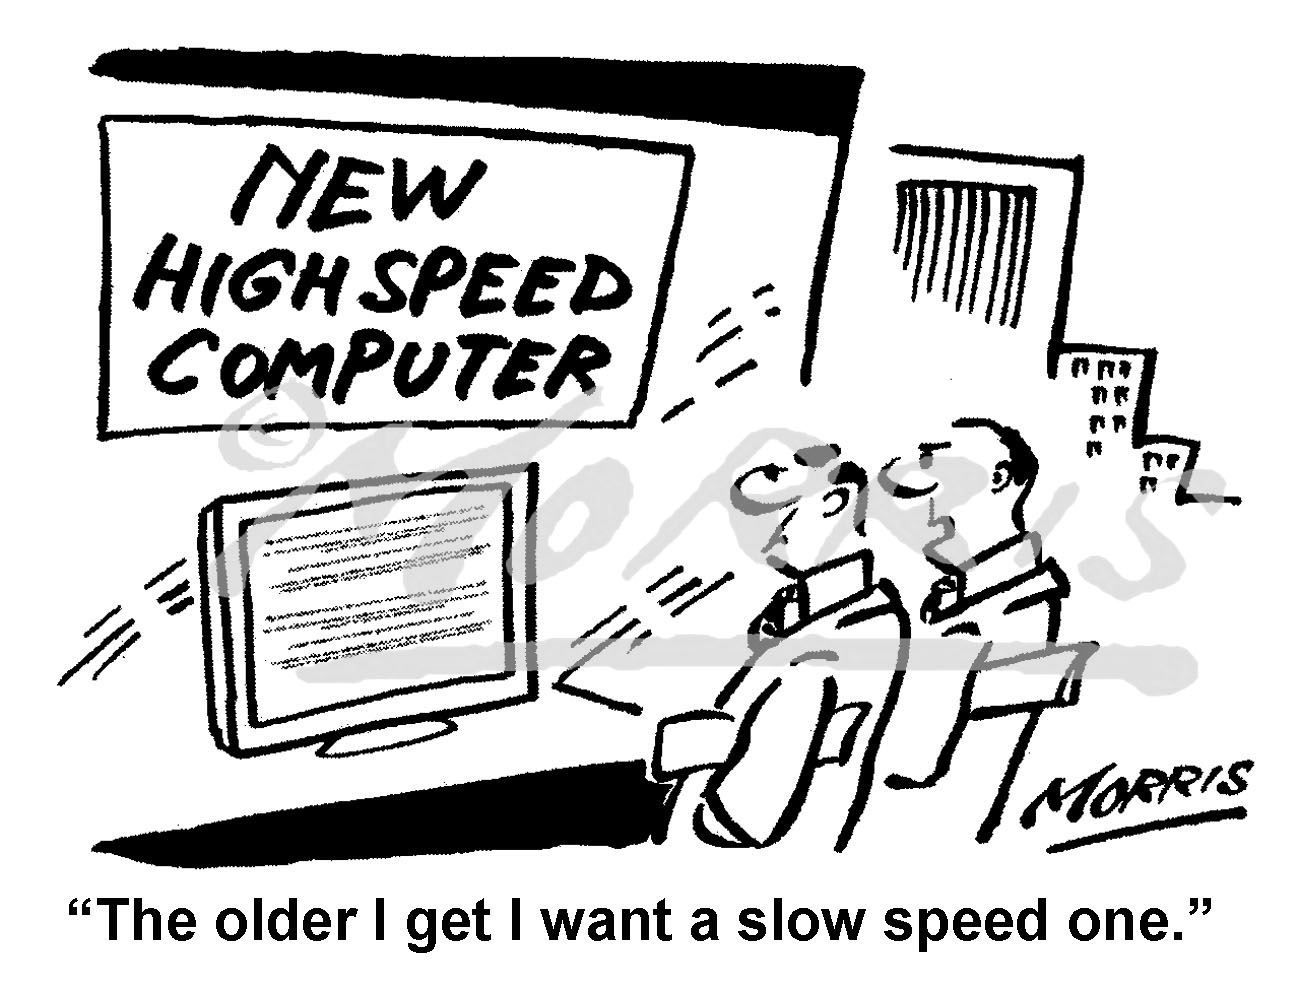 Slow speed computer – Ref: 8297bw